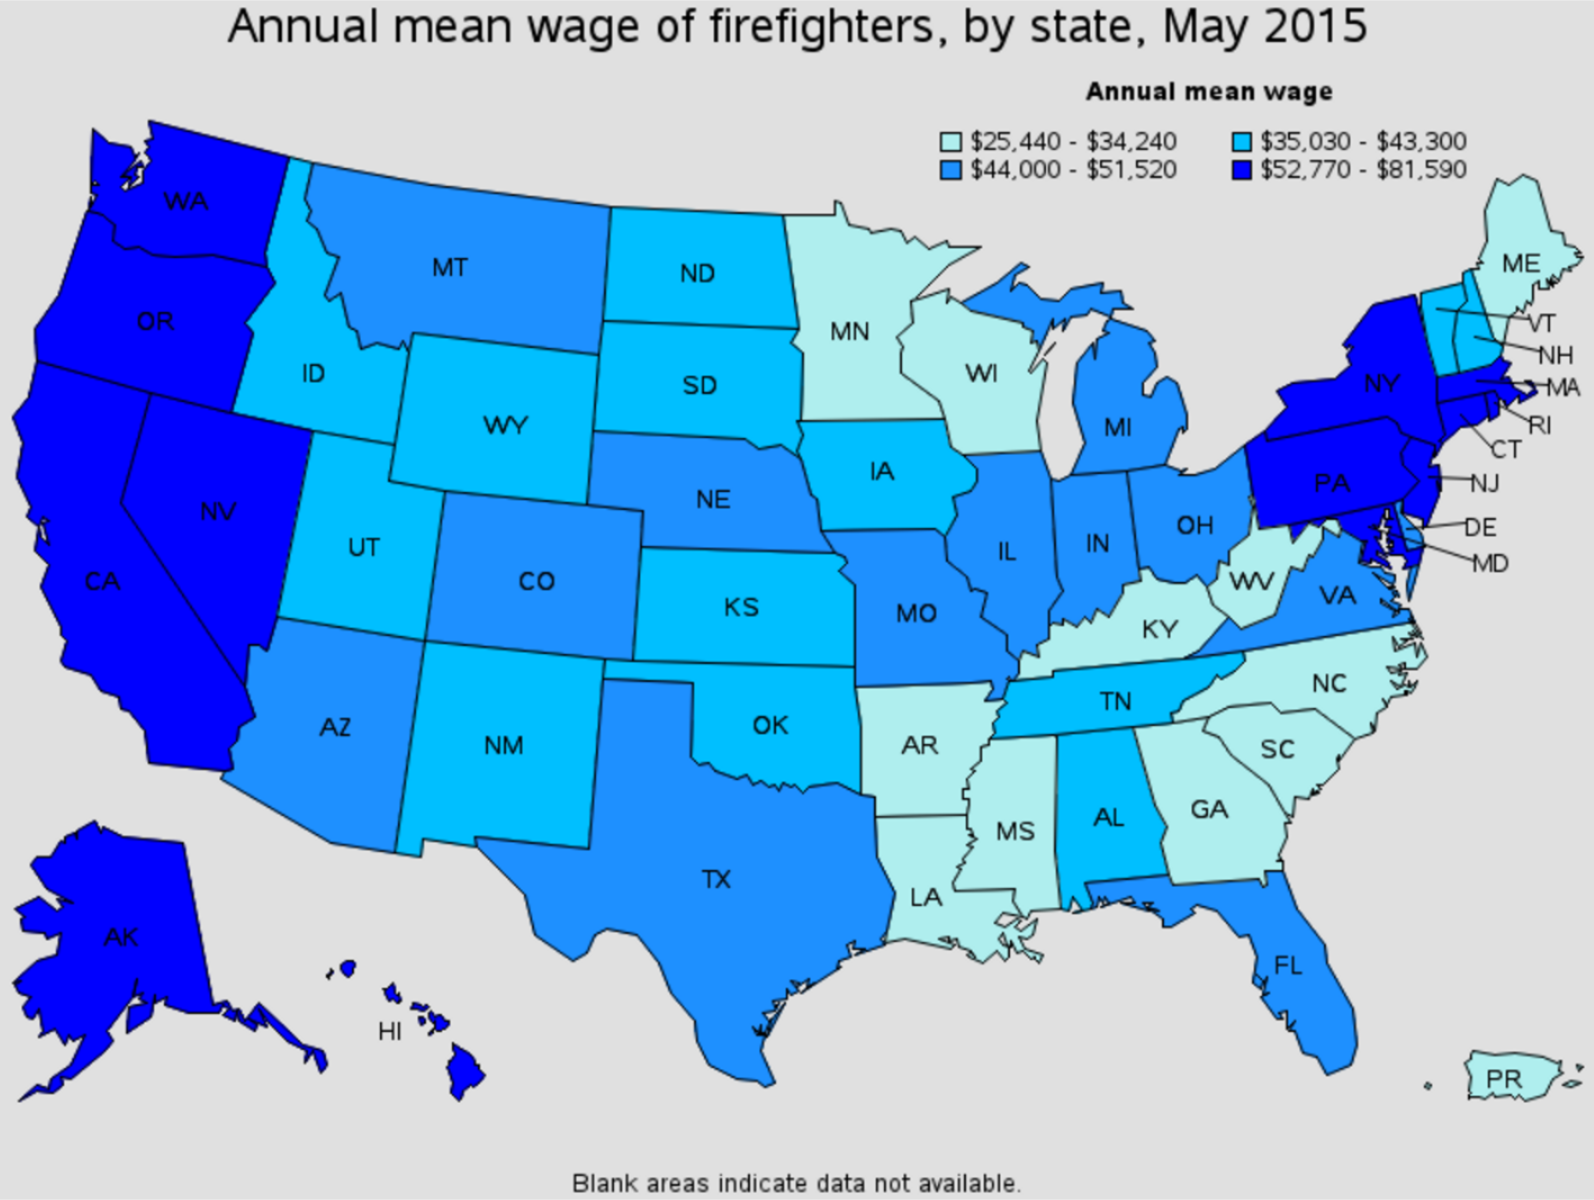 firefighter average salary by state Madison South Dakota